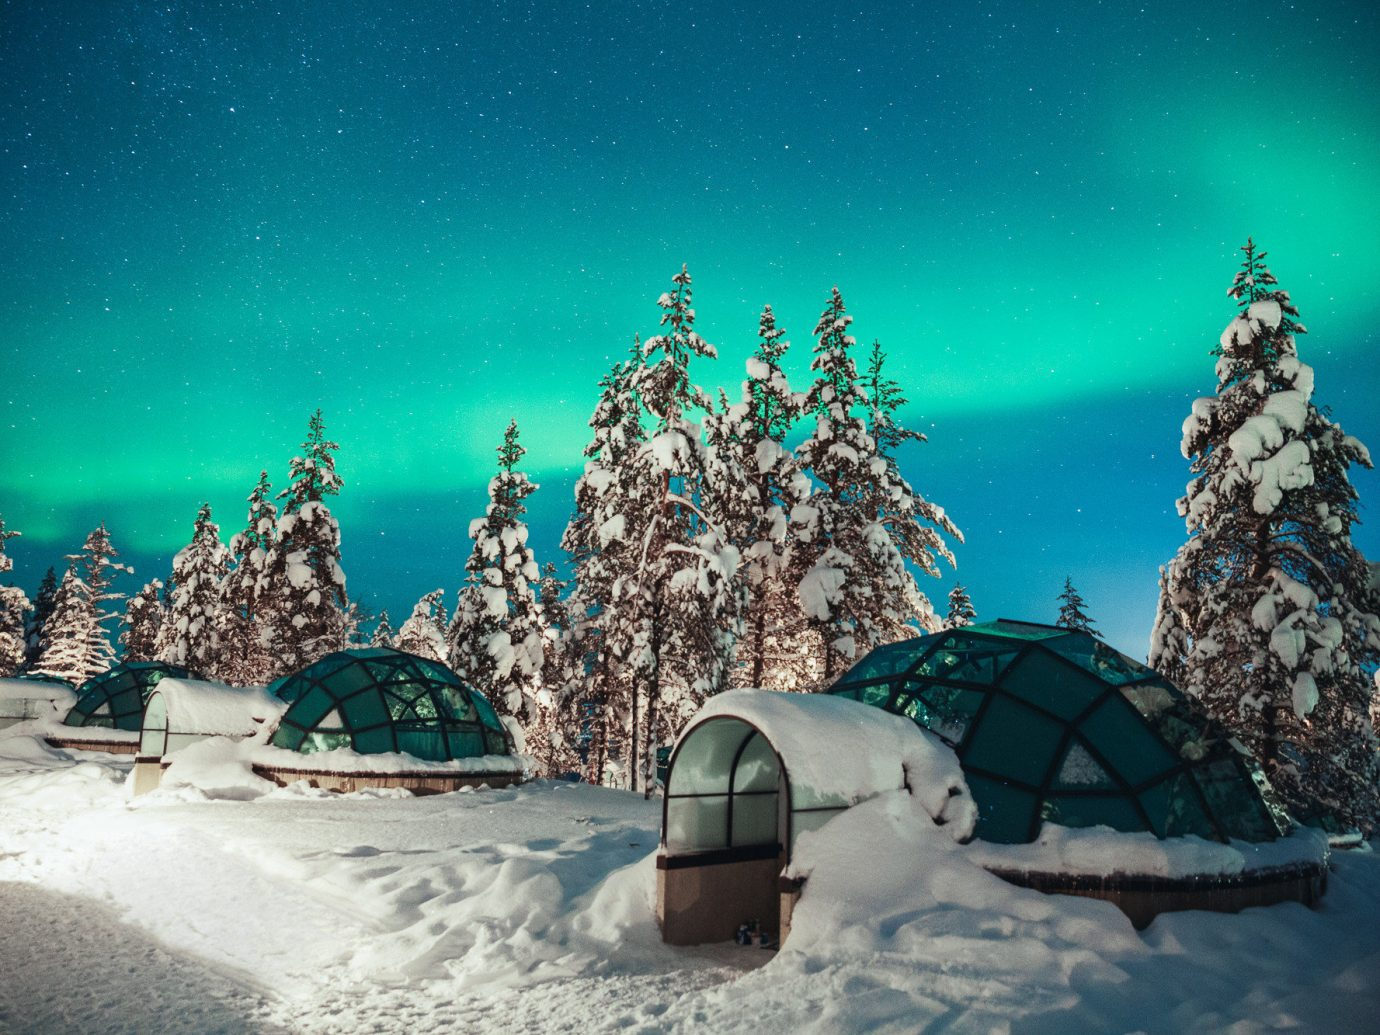 Boutique Hotels Romance Trip Ideas outdoor blue Winter Nature snow sky freezing tree phenomenon atmosphere fir computer wallpaper arctic night space ice stock photography world